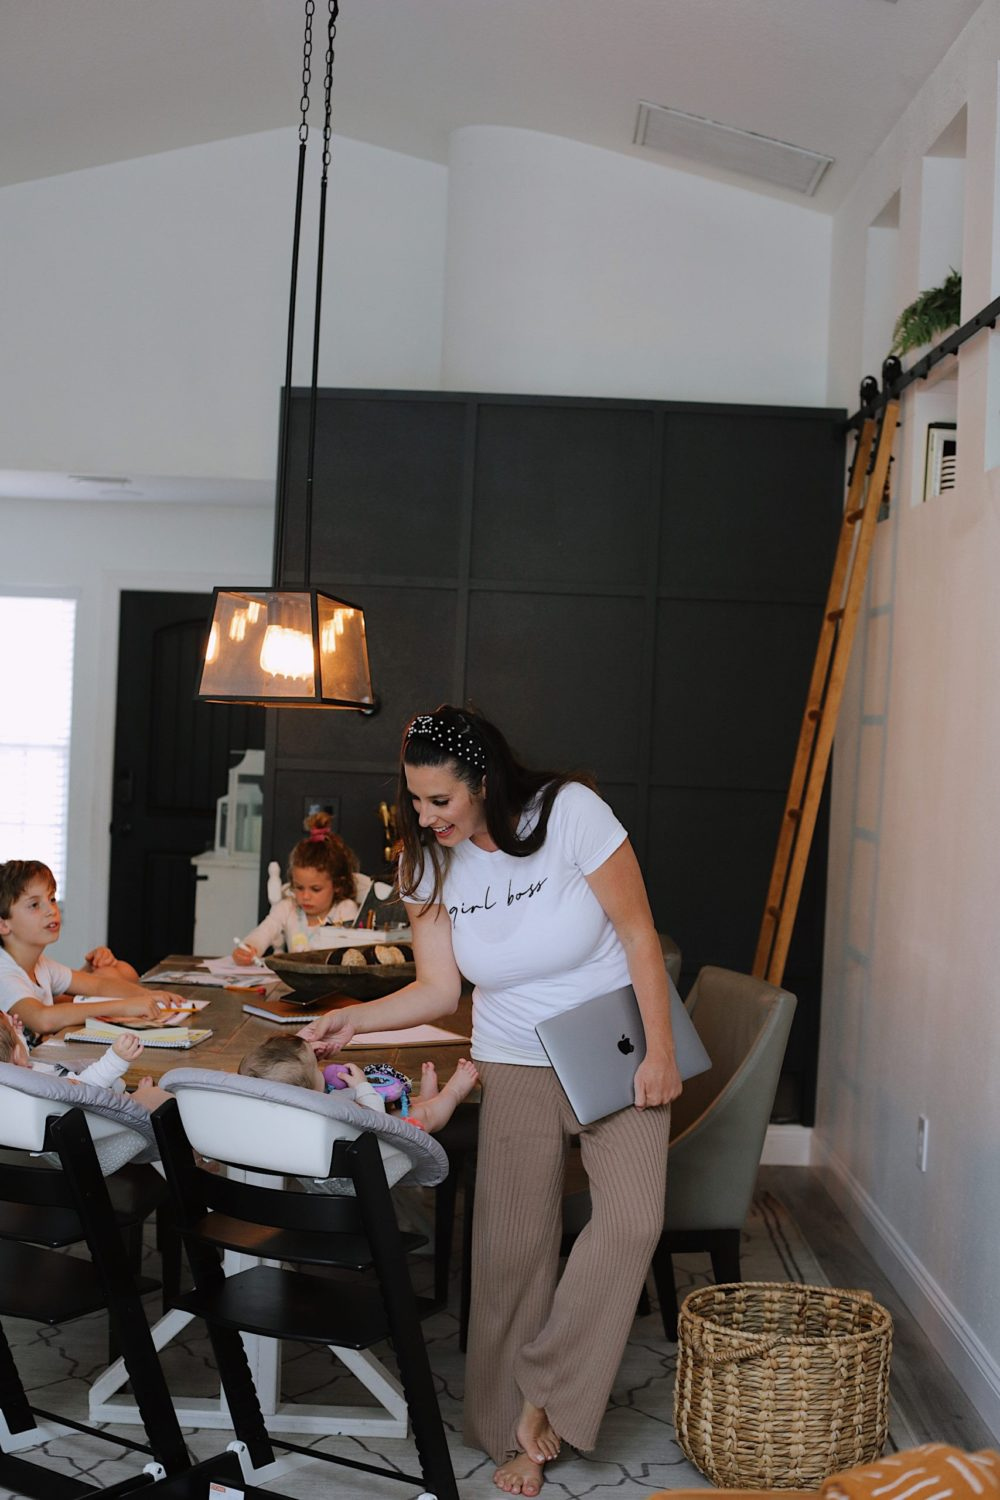 How to Survive Working With Kids at Home - Tips for making the most of working from home with kids homeschooling. Click through for tips from lifestyle blogger Tabitha Blue of Fresh Mommy Blog! | Working From Home With Kids by popular Florida lifestyle blog, Fresh Mommy Blog: image of a mom standing at a table with her kids while they do their homeschooling work.